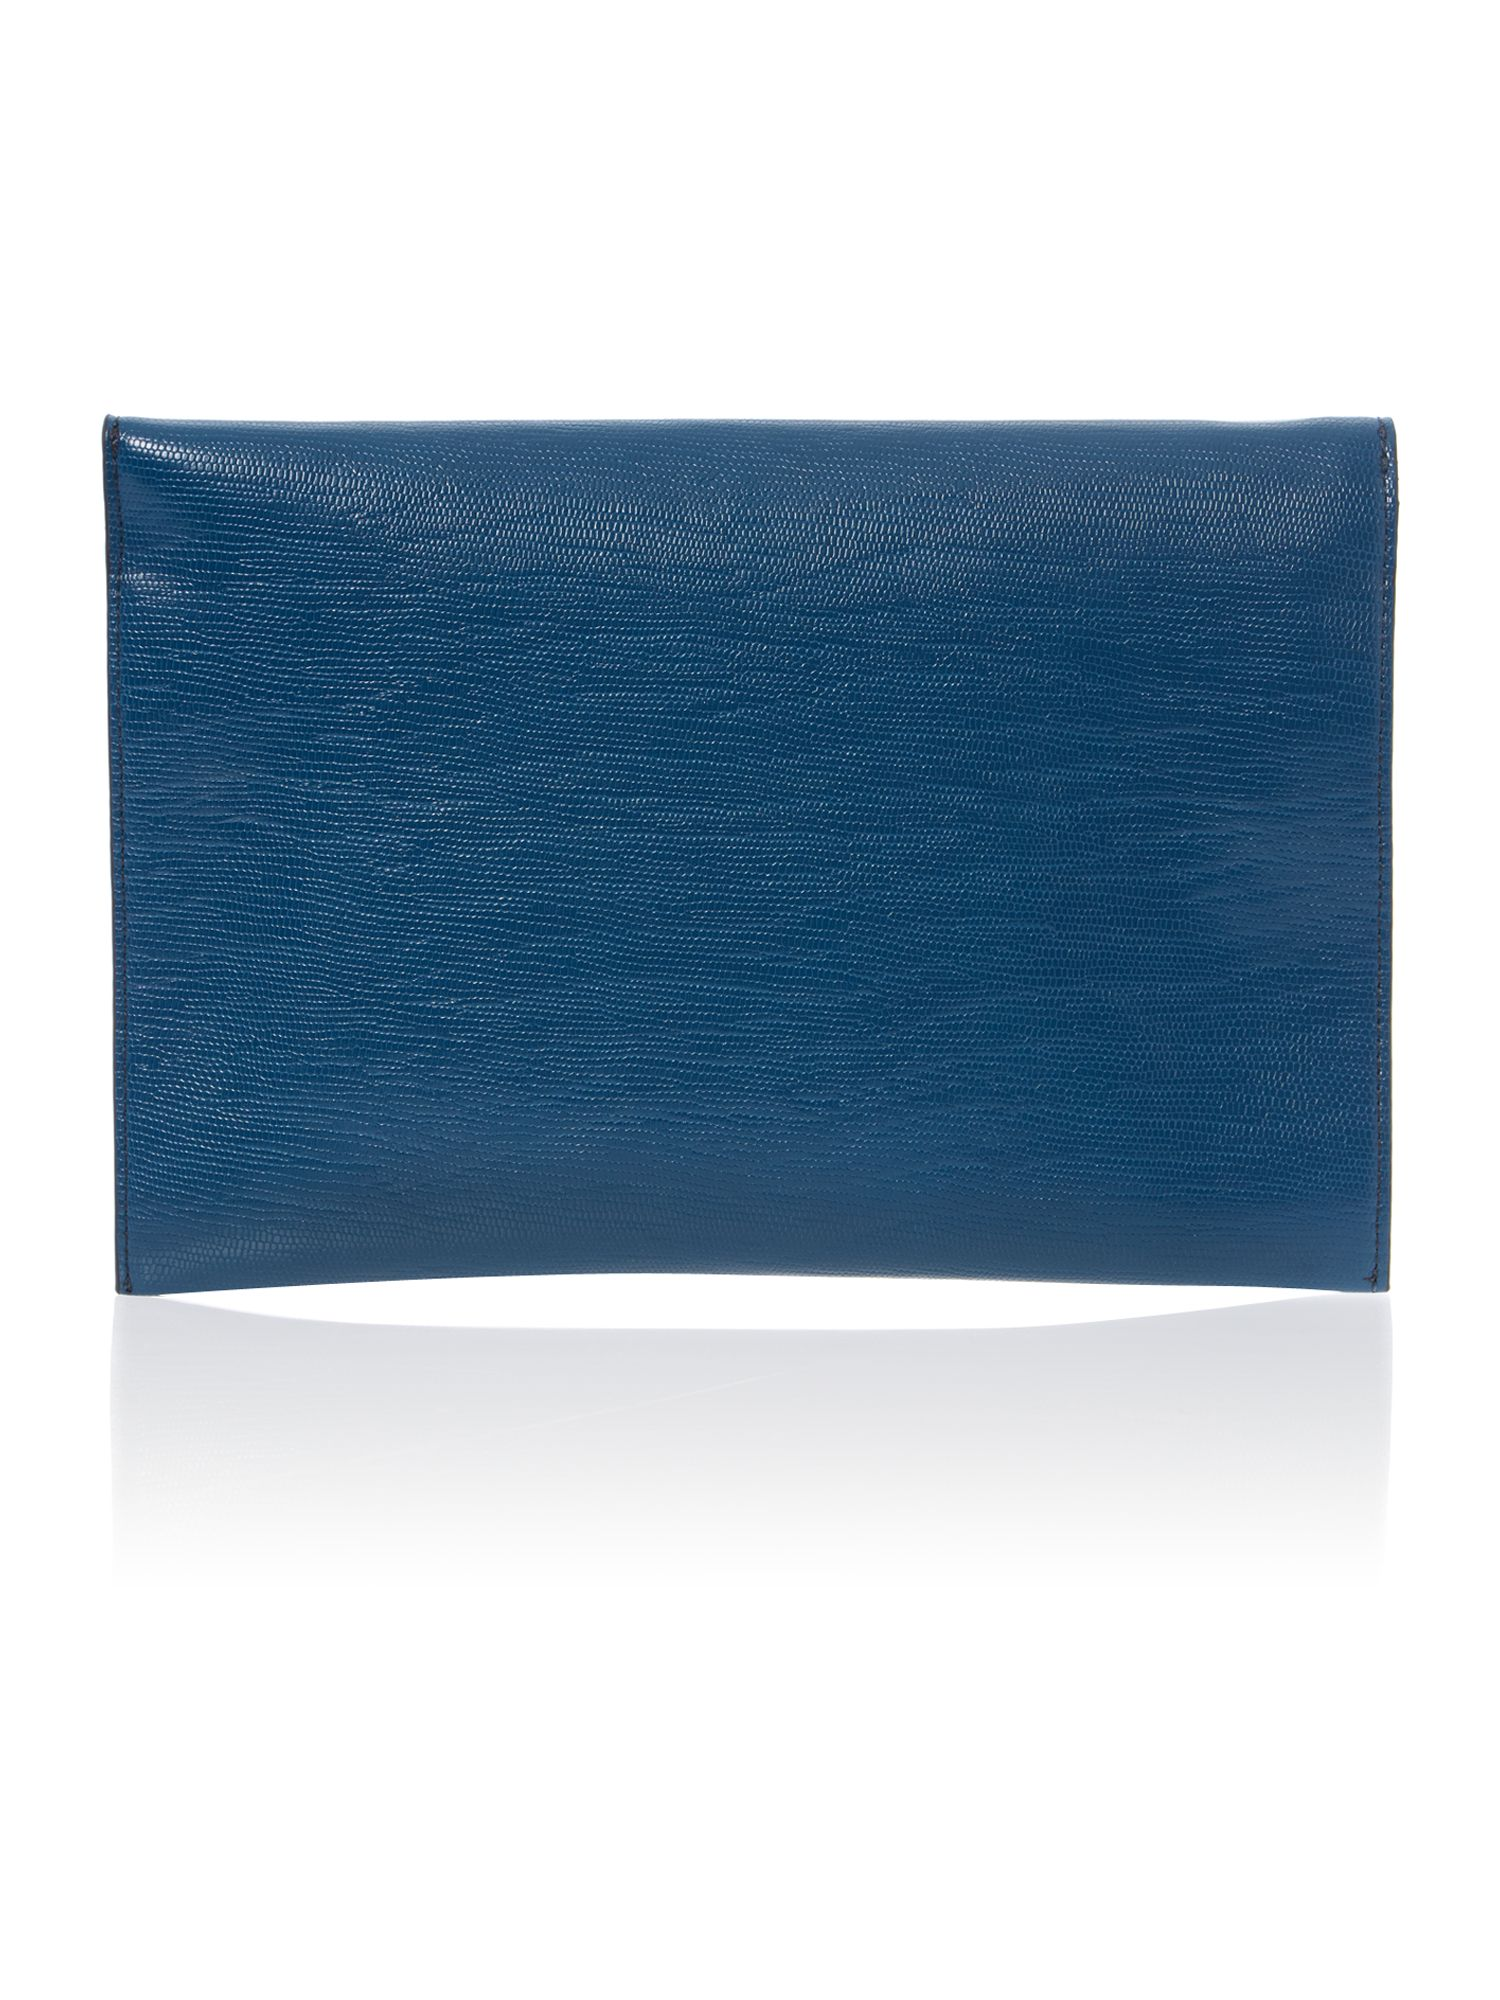 Navy envelope clutch bag with chain strap